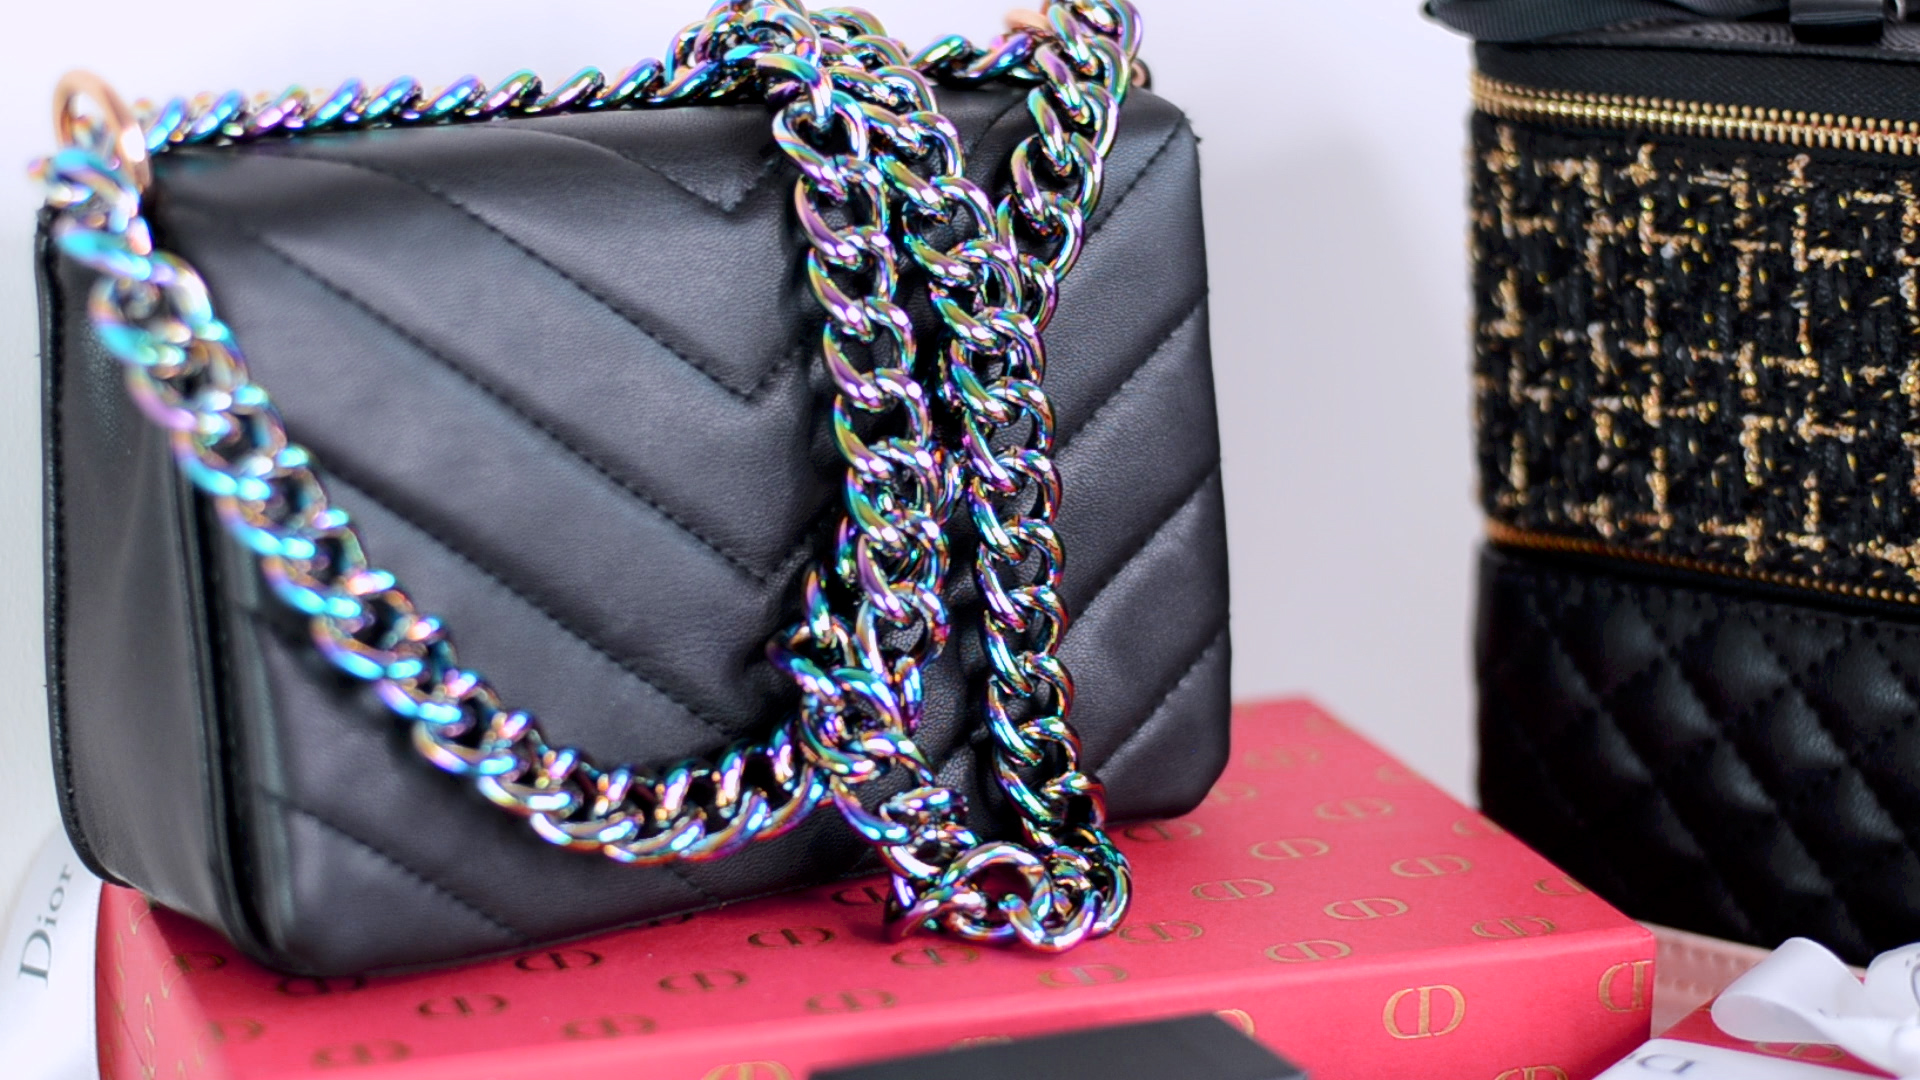 Chanel Mermaid Boy Bag Inspired from ASOS